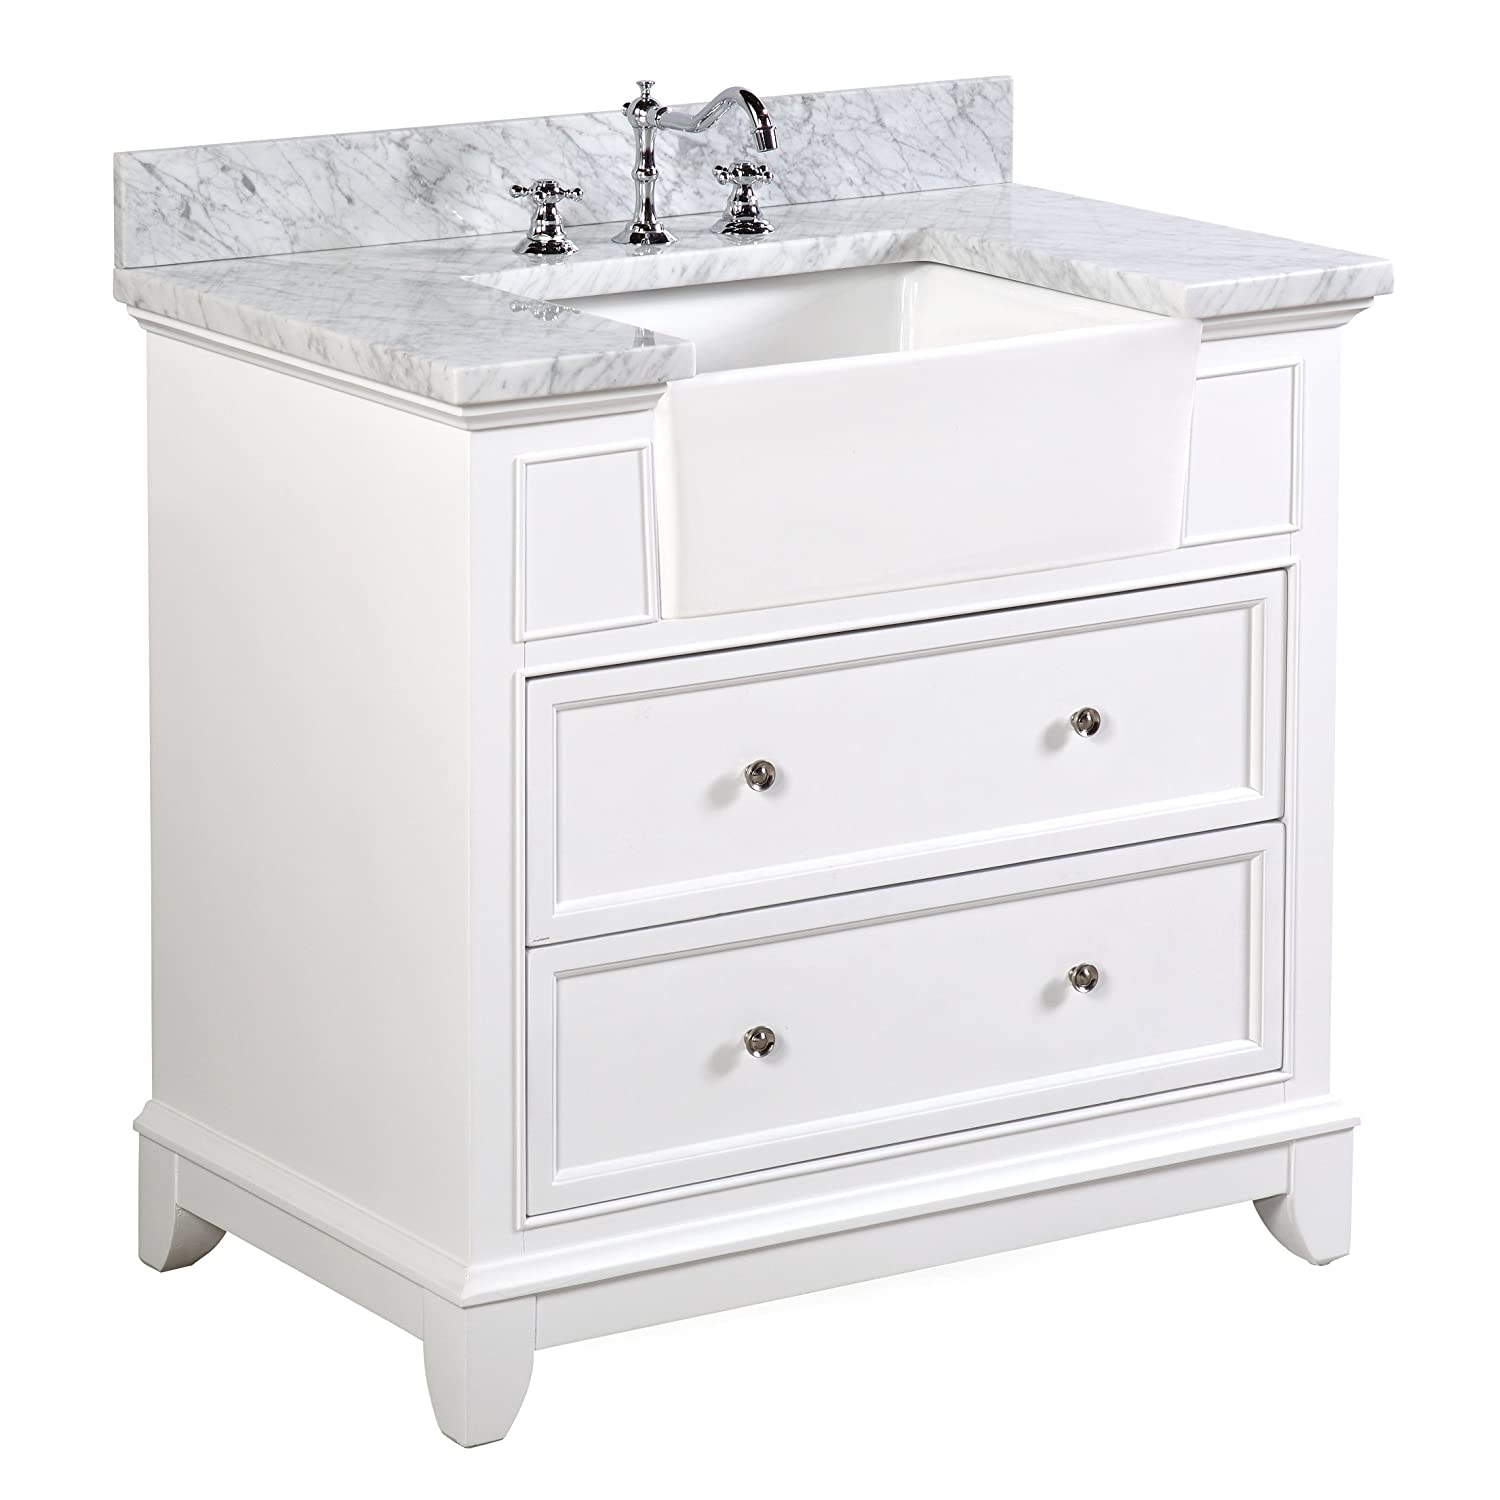 Carrara//White and White Ceramic Farmhouse Apron Sink : Includes a Carrara Marble Countertop White Cabinet with Soft Close Drawers Sophie 36-inch Bathroom Vanity